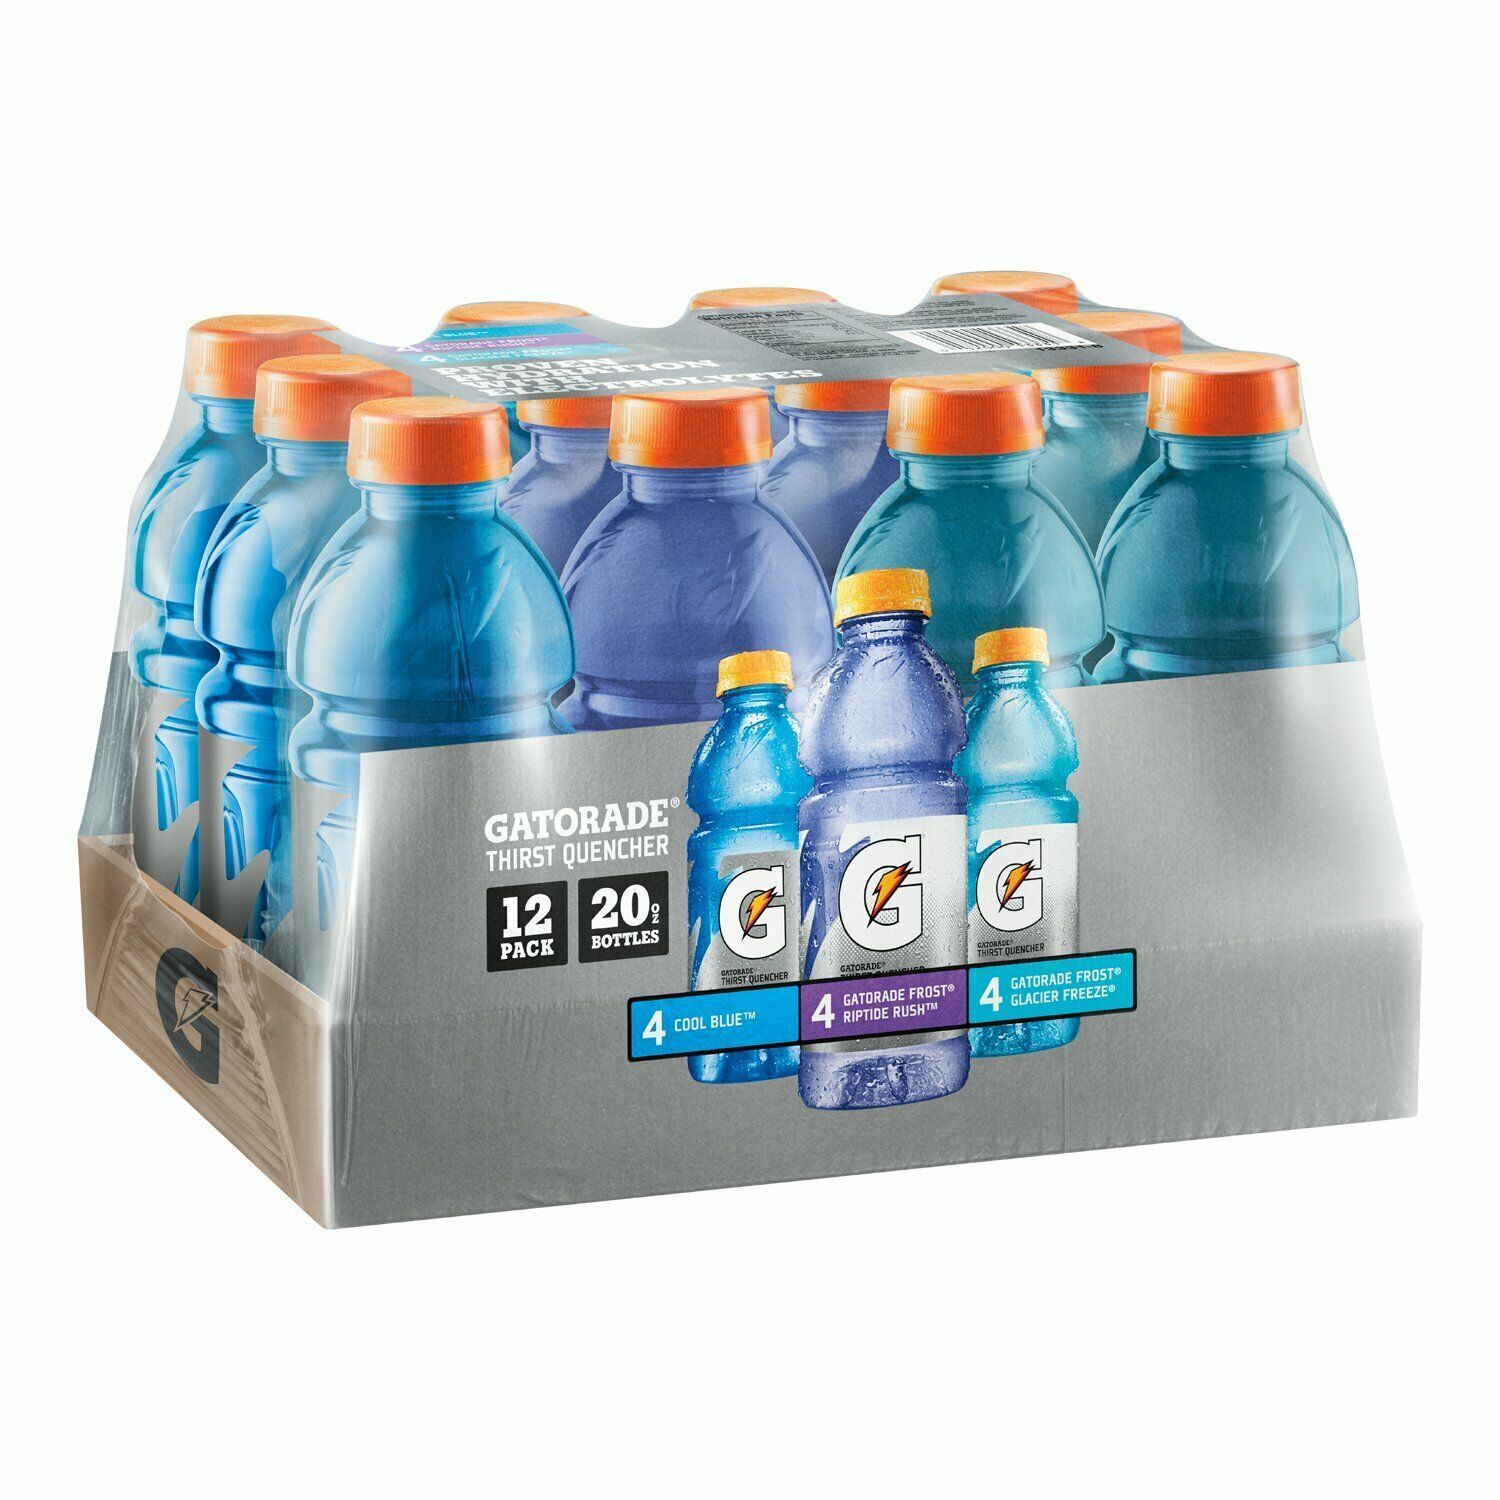 Primary image for Gatorade Frost Thirst Quencher Variety Pack 20 Ounce Bottles Pack of 12